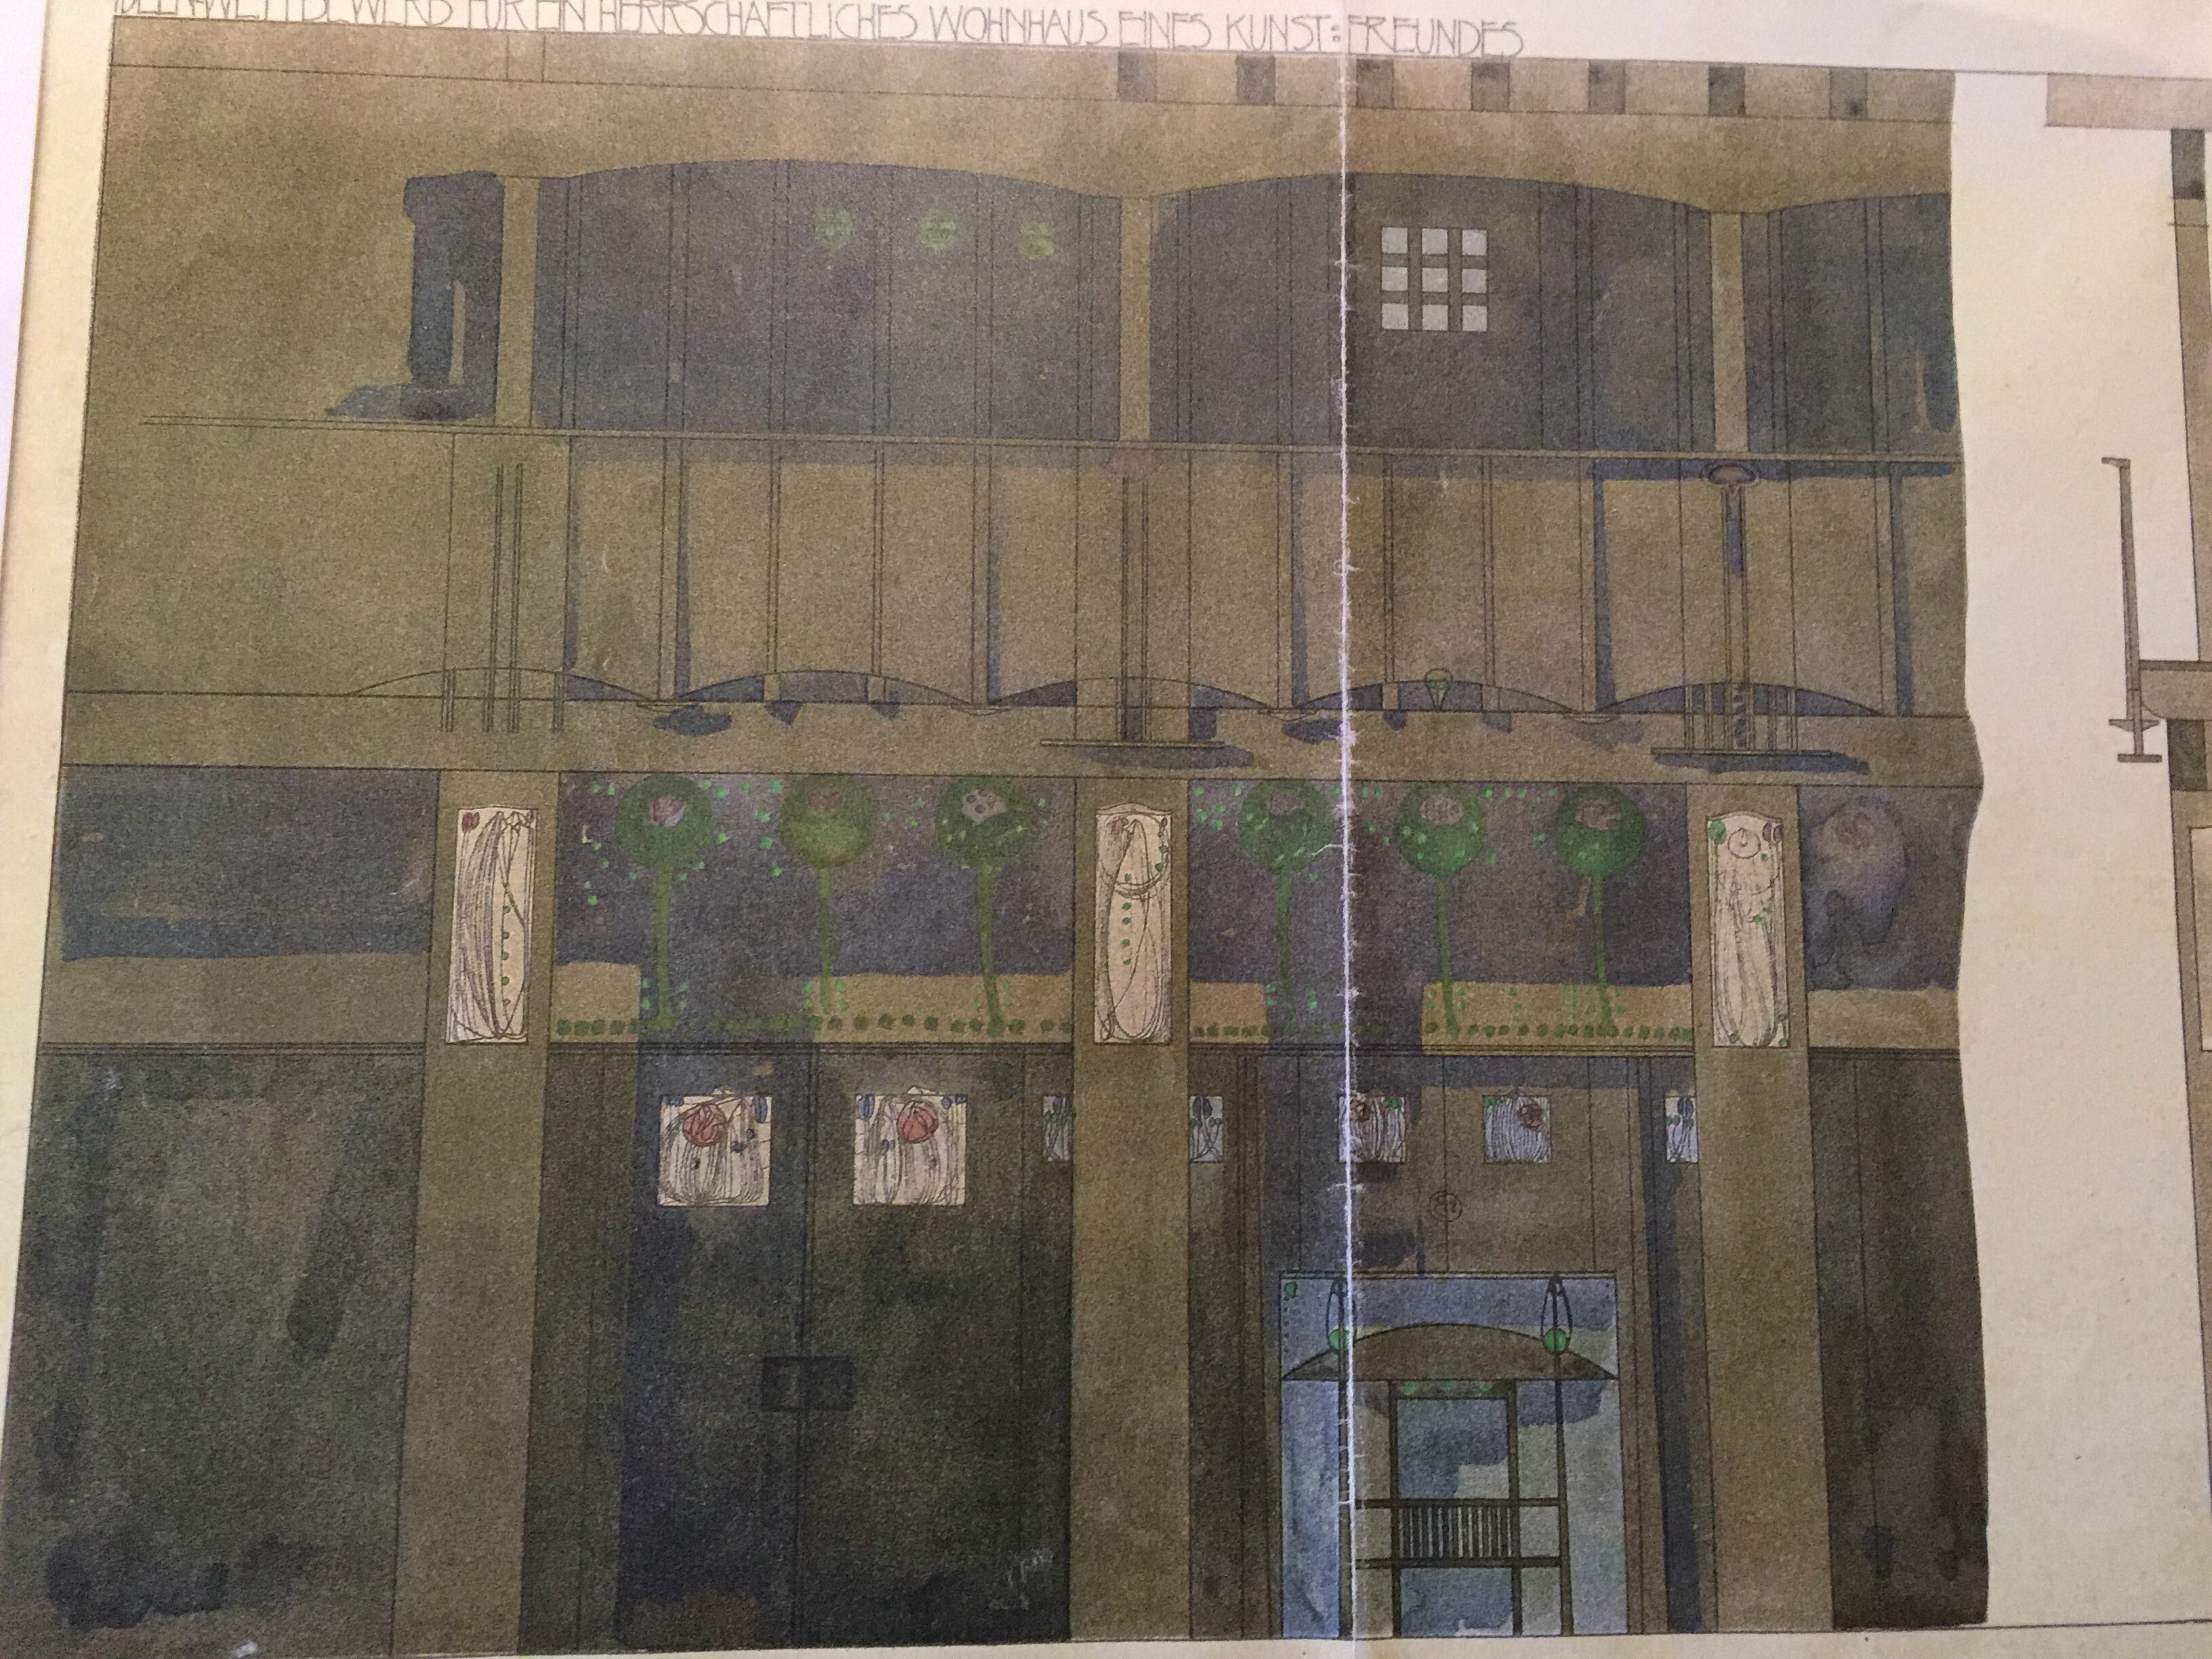 It Was Based Again On One Of The Glasgow Tea Rooms Designs This Time A  Scheme From The Argyle Street One Fully Documented In Mackintosh  Literature. 78 ...